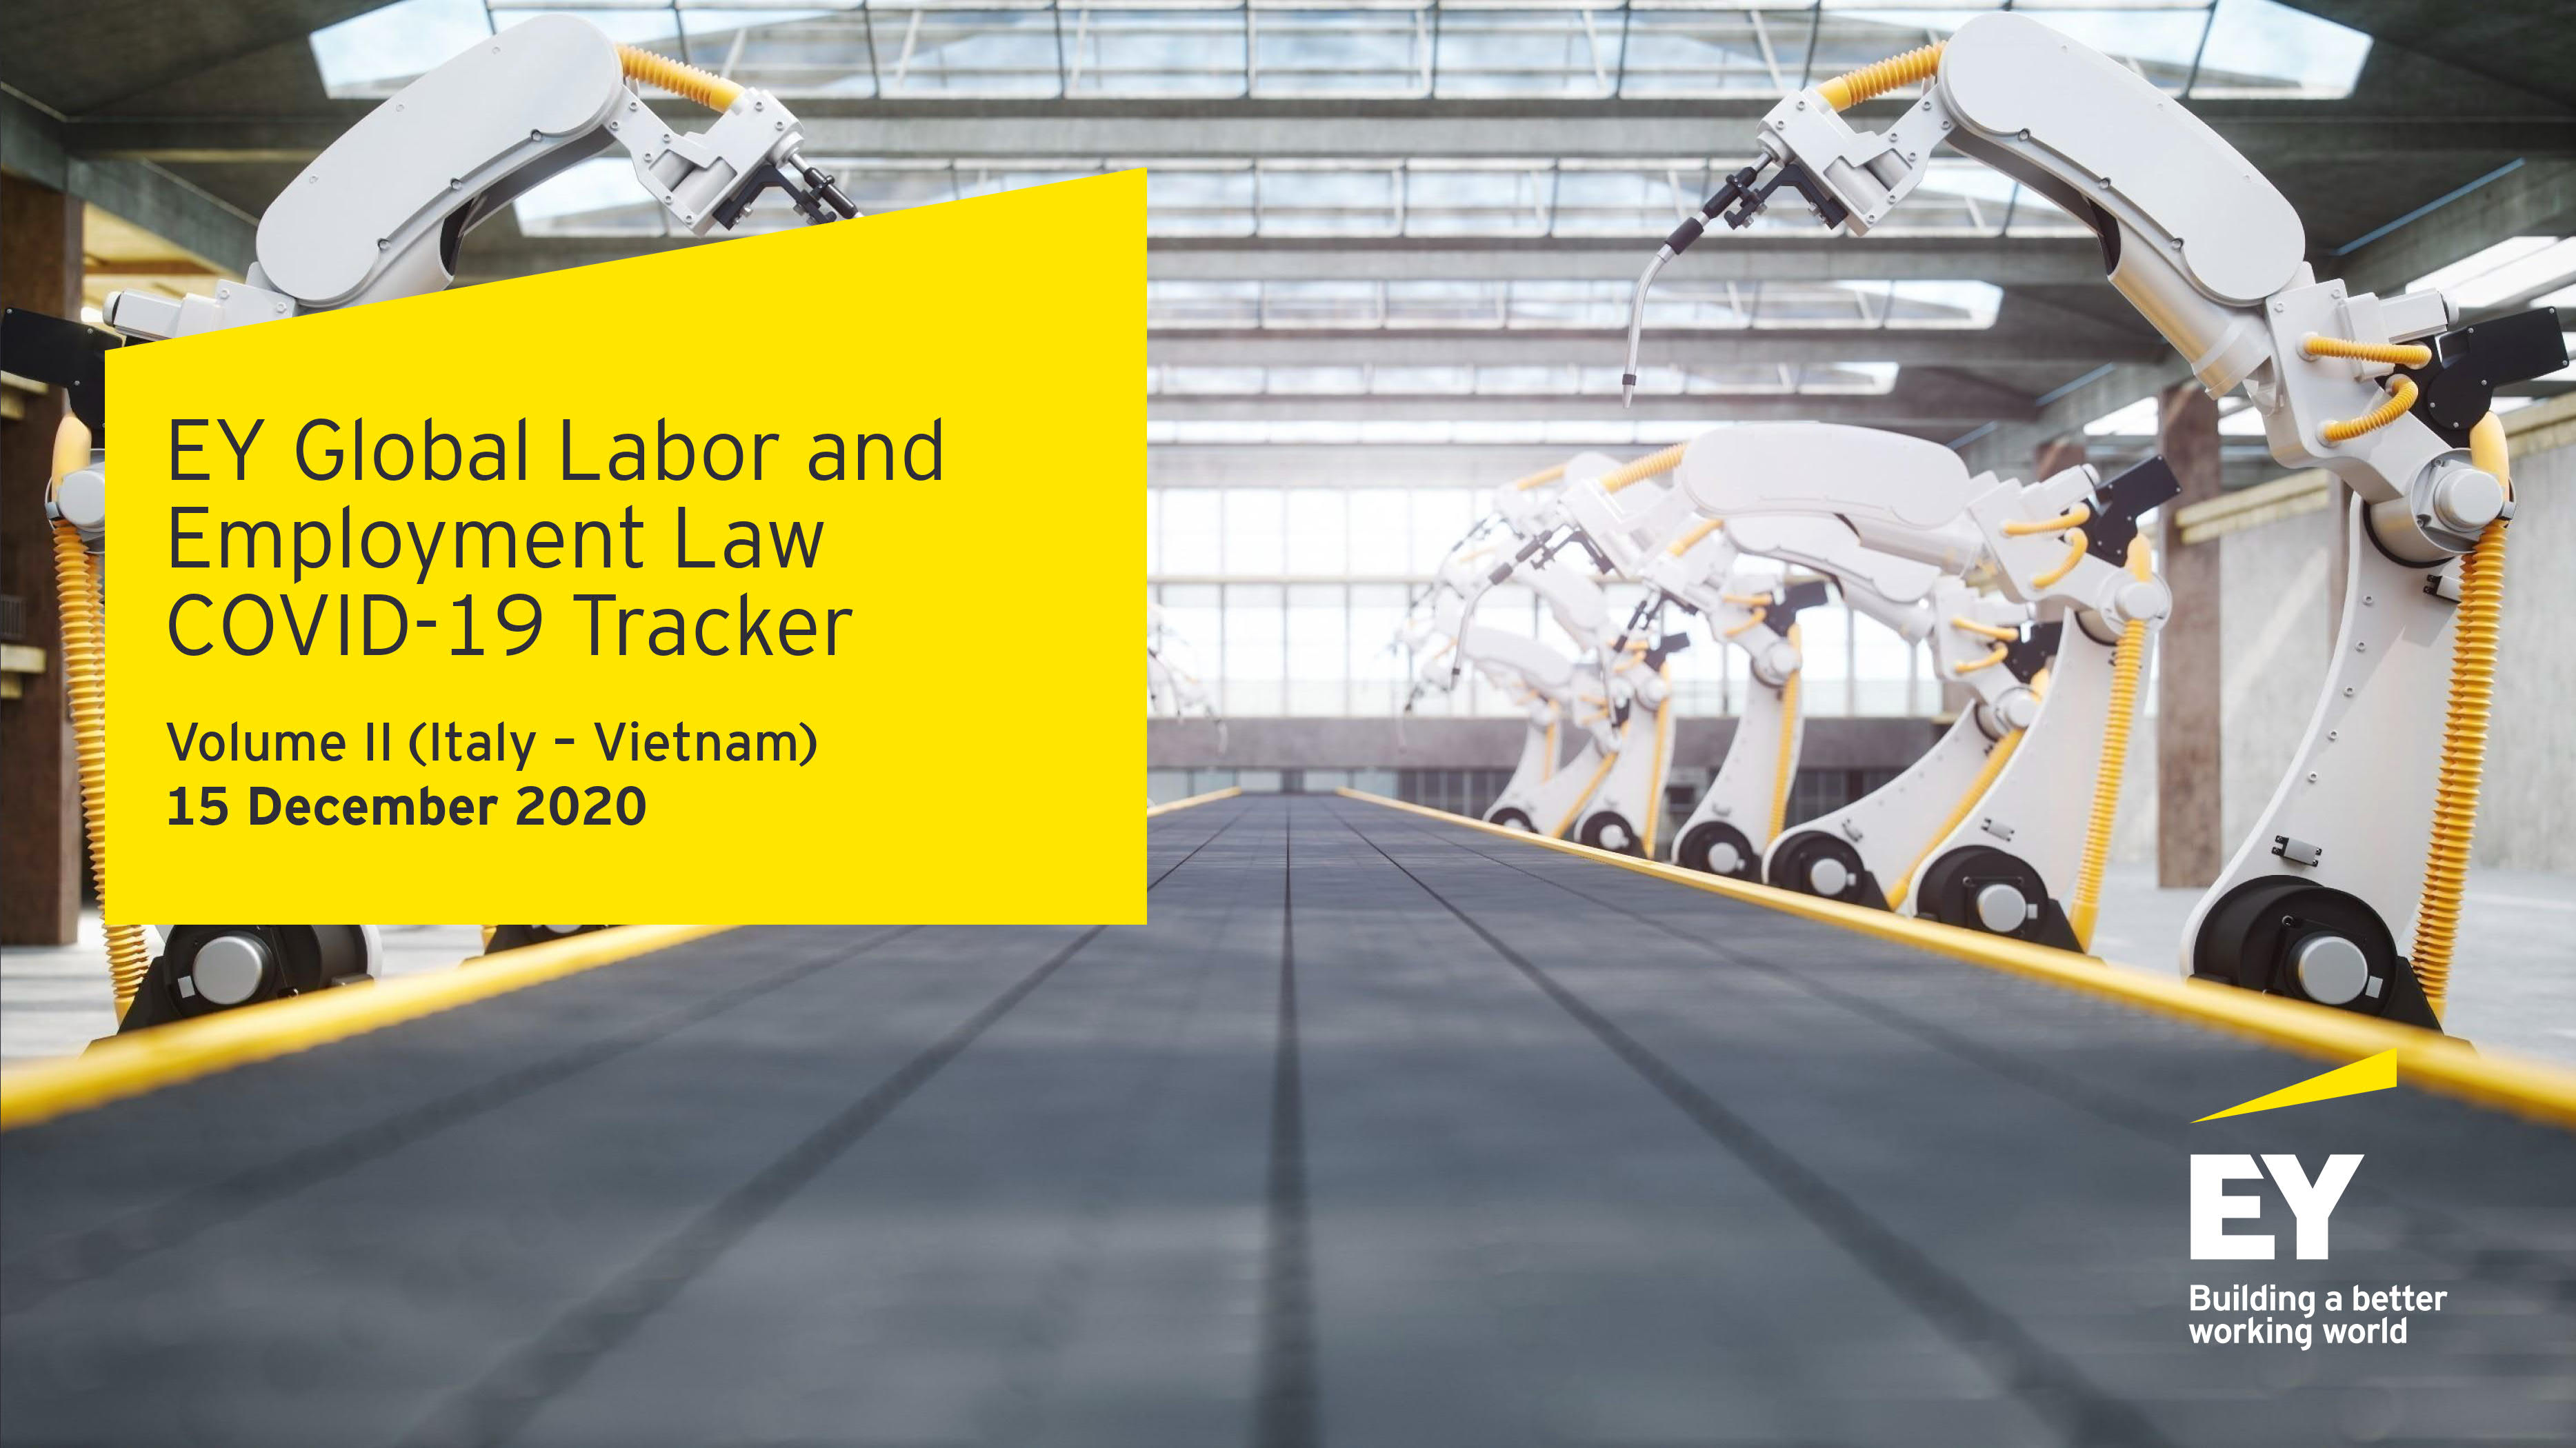 EY Global Labor and Employment Law COVID-19 Tracker Volume II (Italy – Vietnam) 15 December 2020